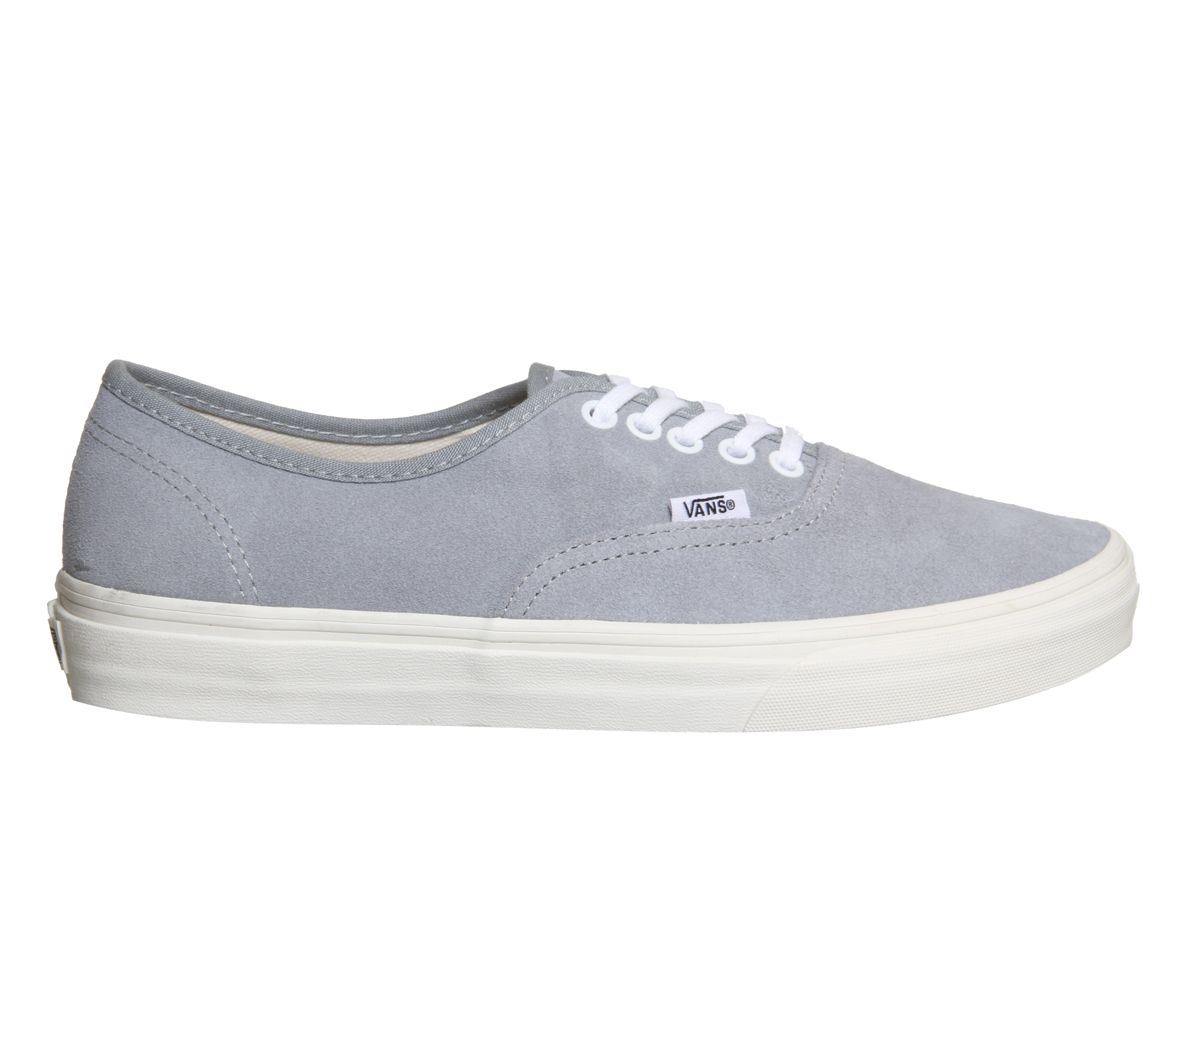 ab85b3598d740b Vans Authentic Vintage Quarry St - Unisex Sports